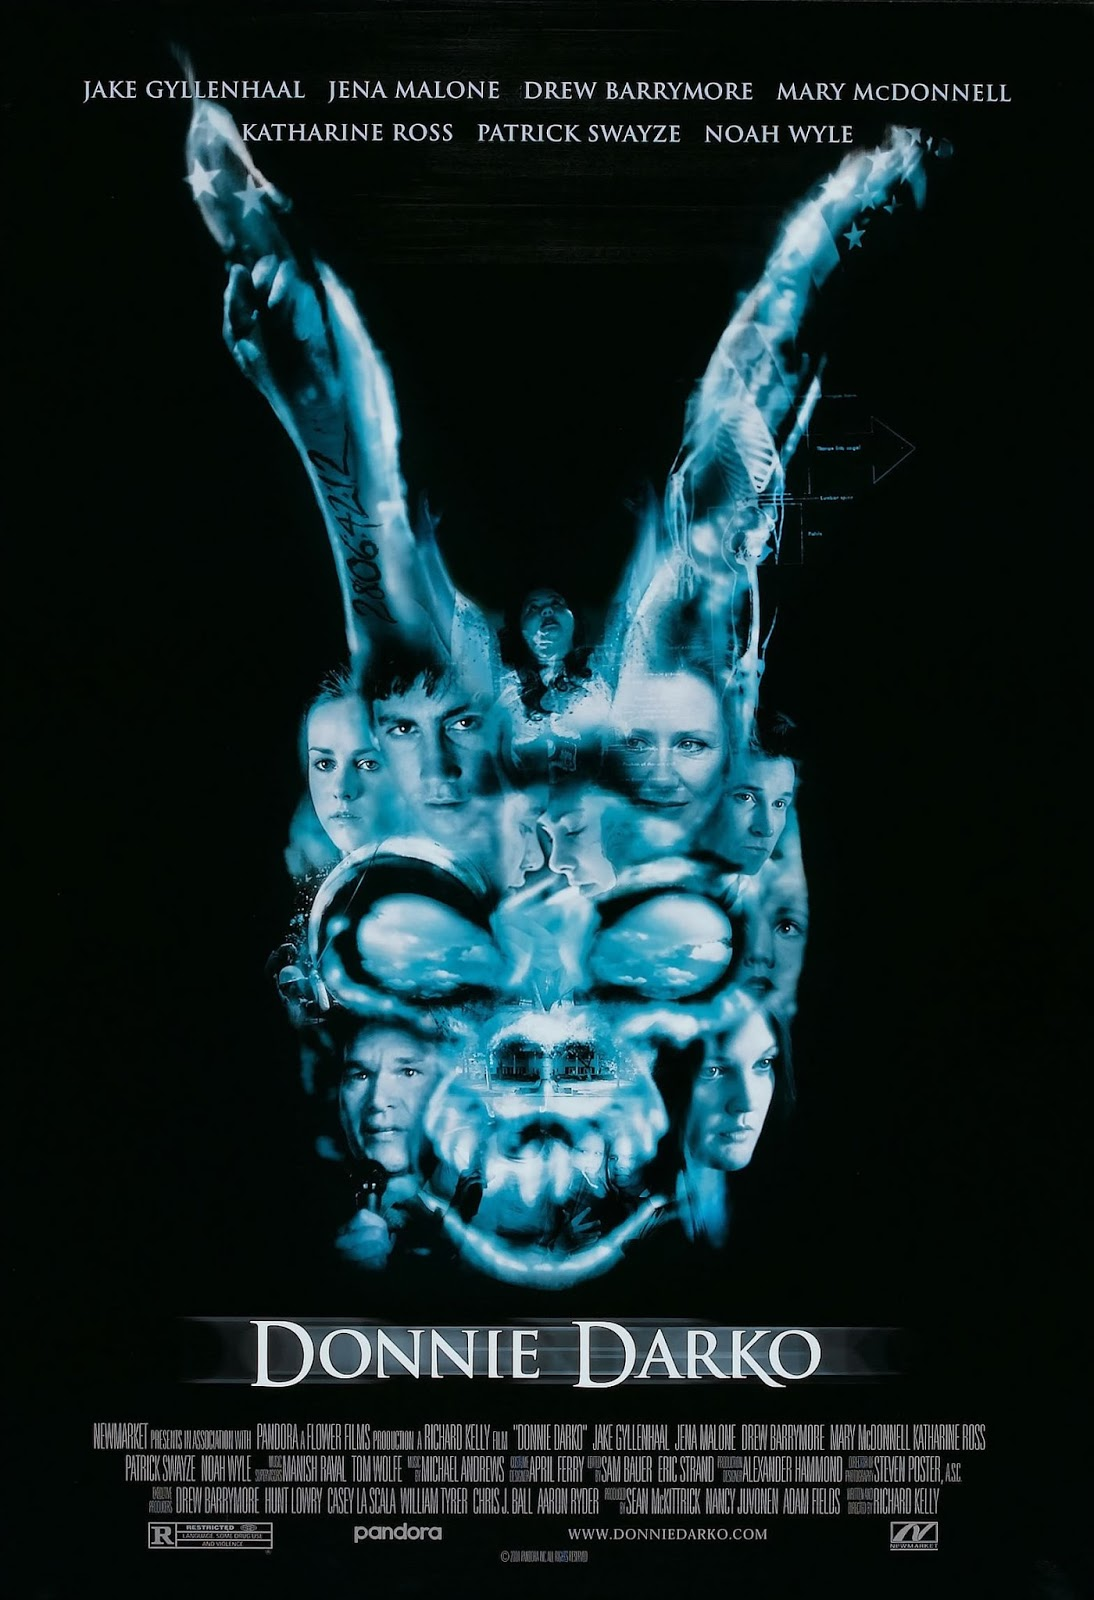 The theatrical release poster for Donnie Darko. It depicts a terrifying blue rabbit's head on a black background. The rabbit's head is actually a collage created by combining various characters' faces and other stills from the film.